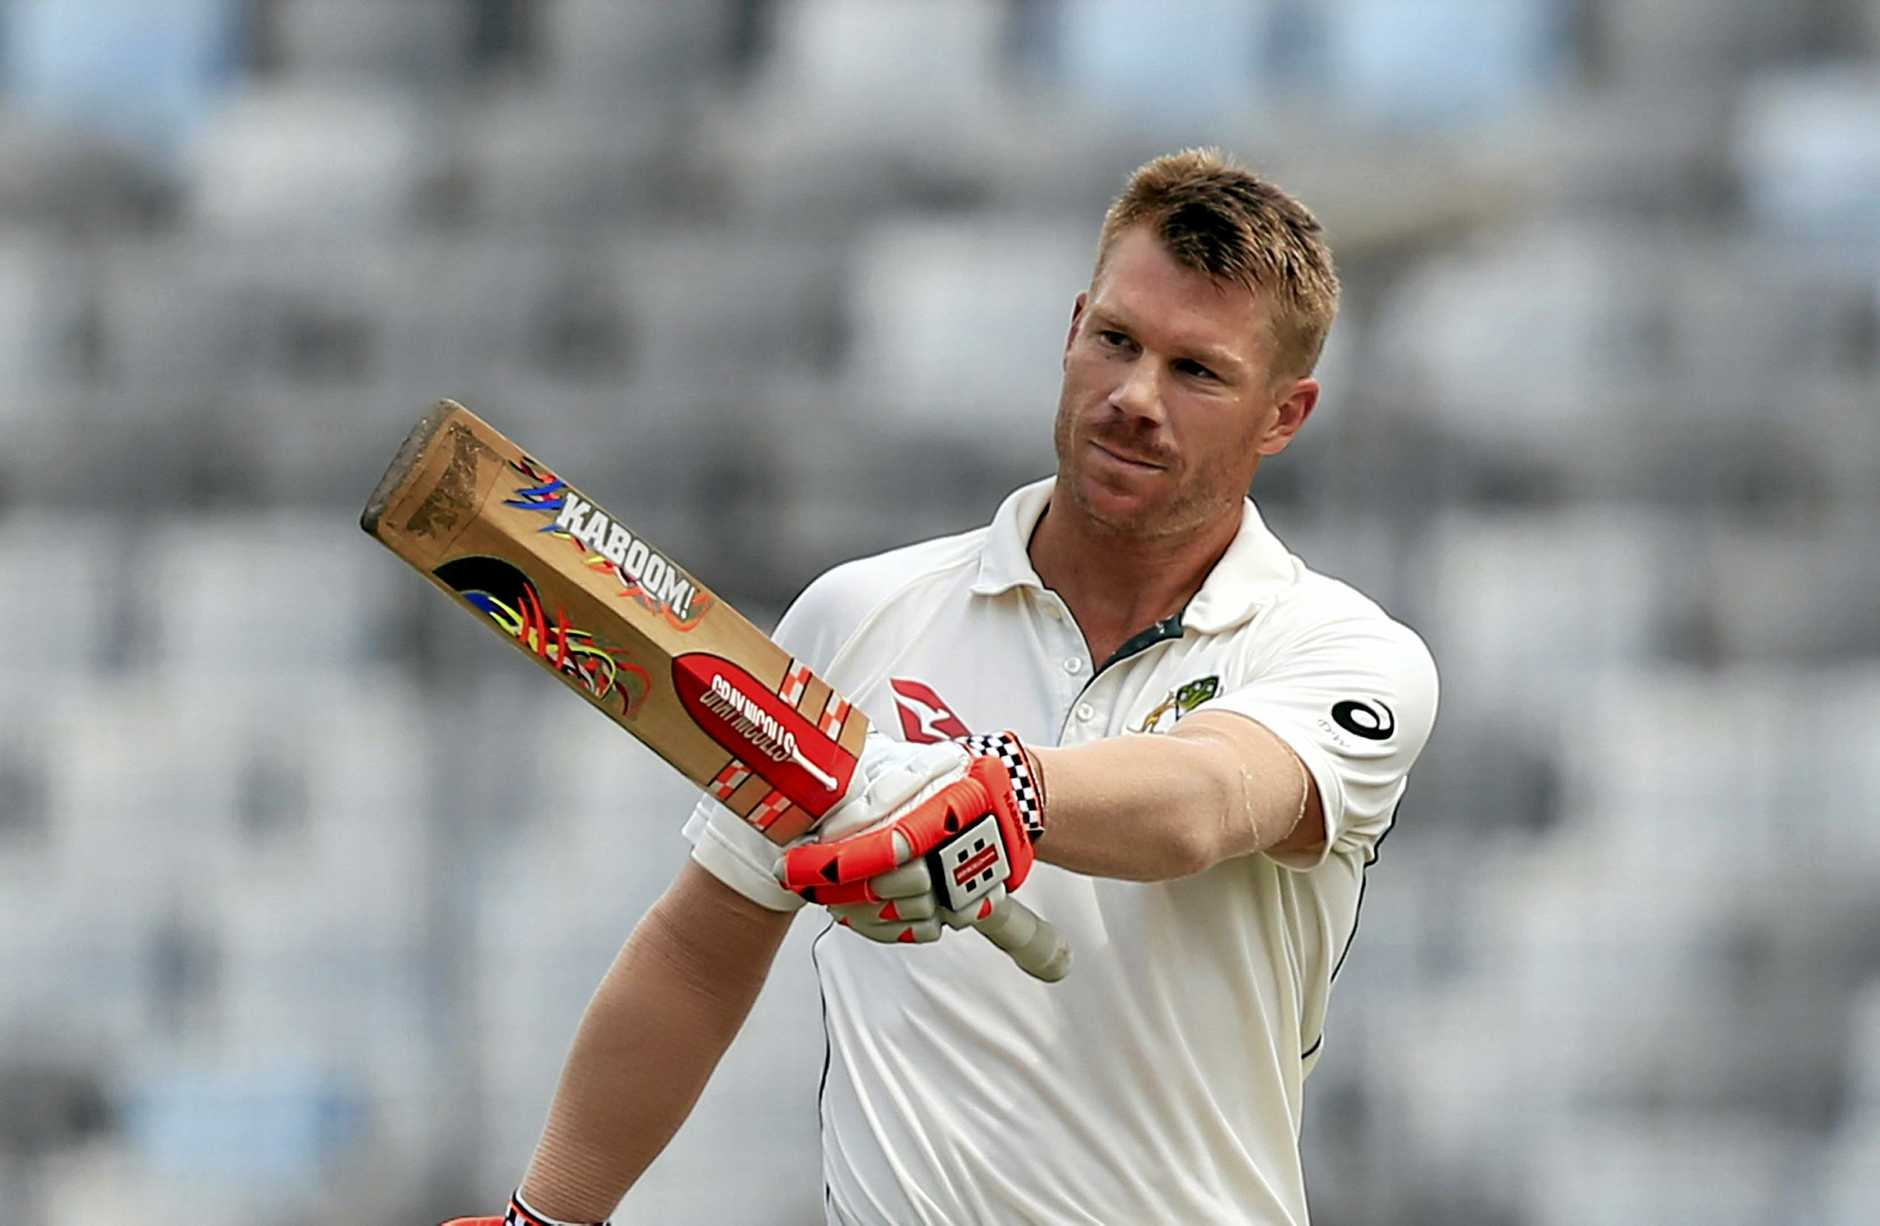 Australia's David Warner acknowledges the crowed after scoring a century